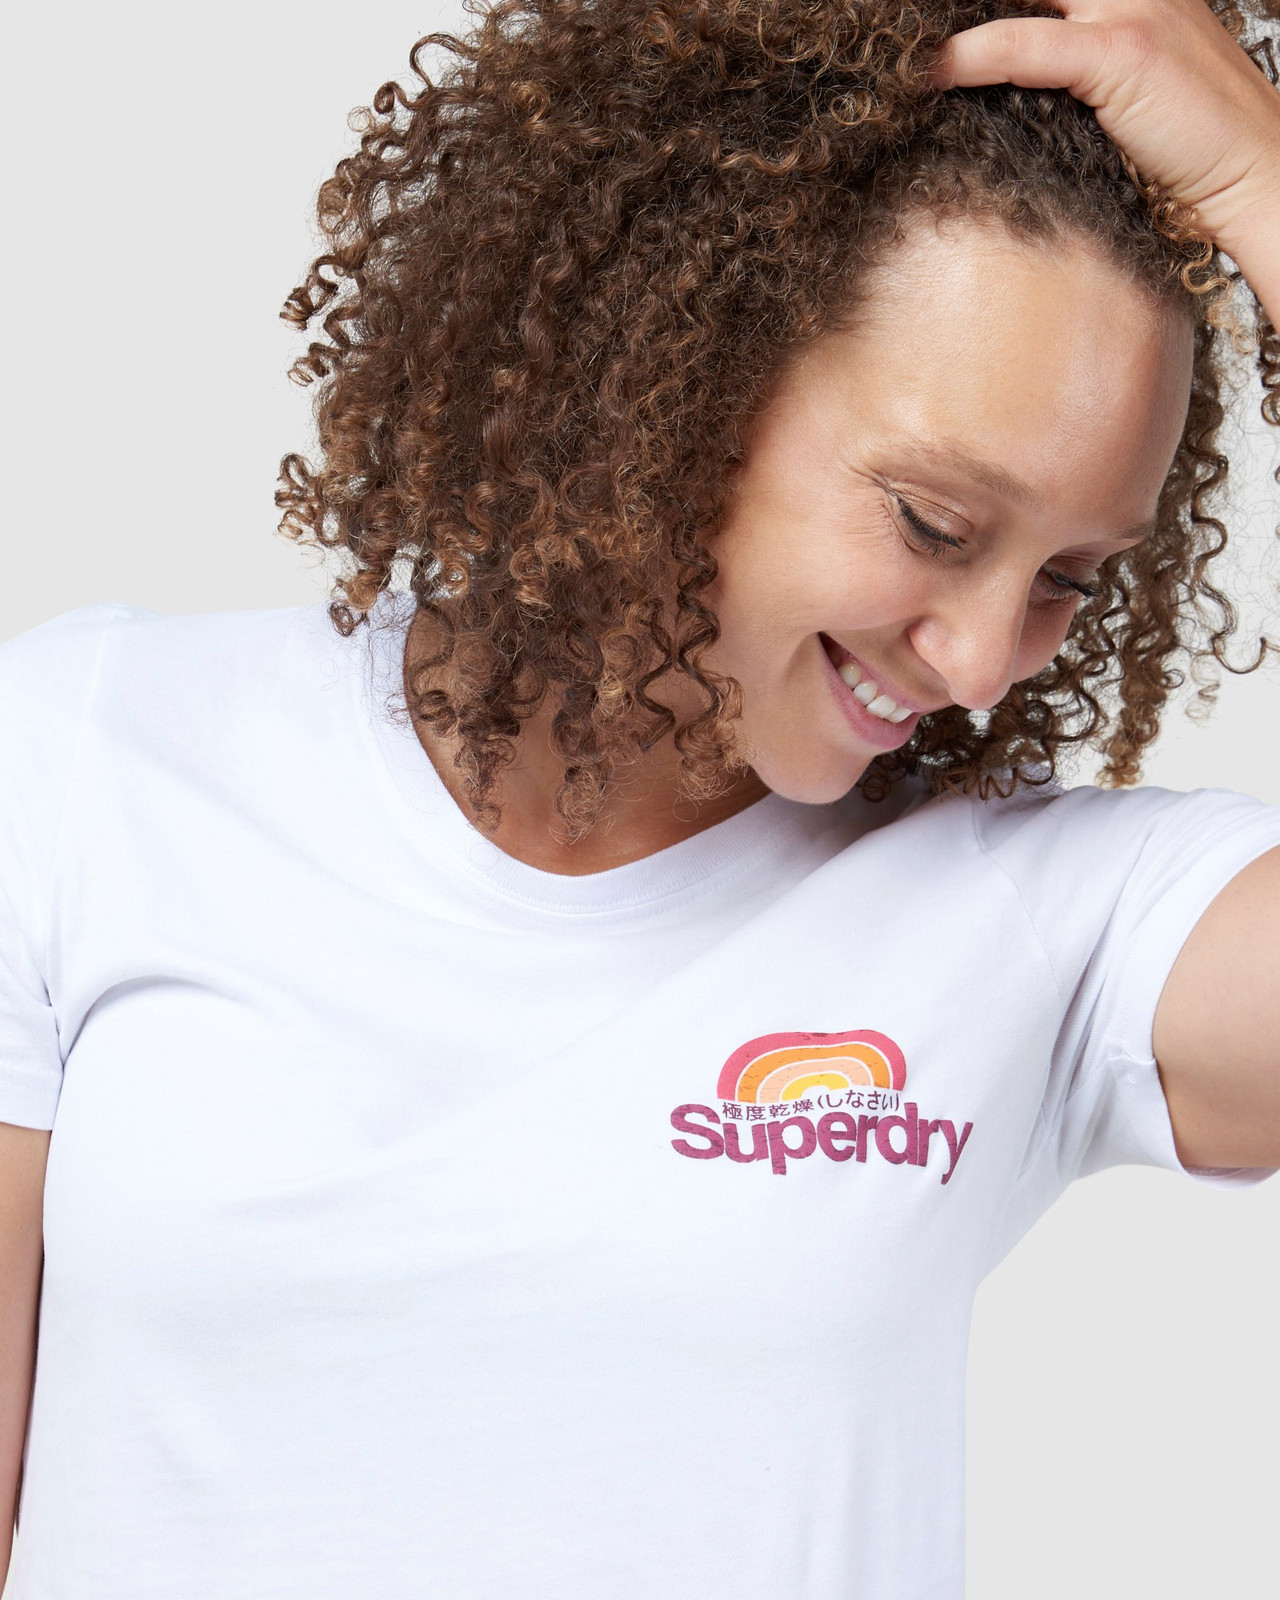 Superdry Womens CL WILDERNESS TEE White Printed T Shirts 5